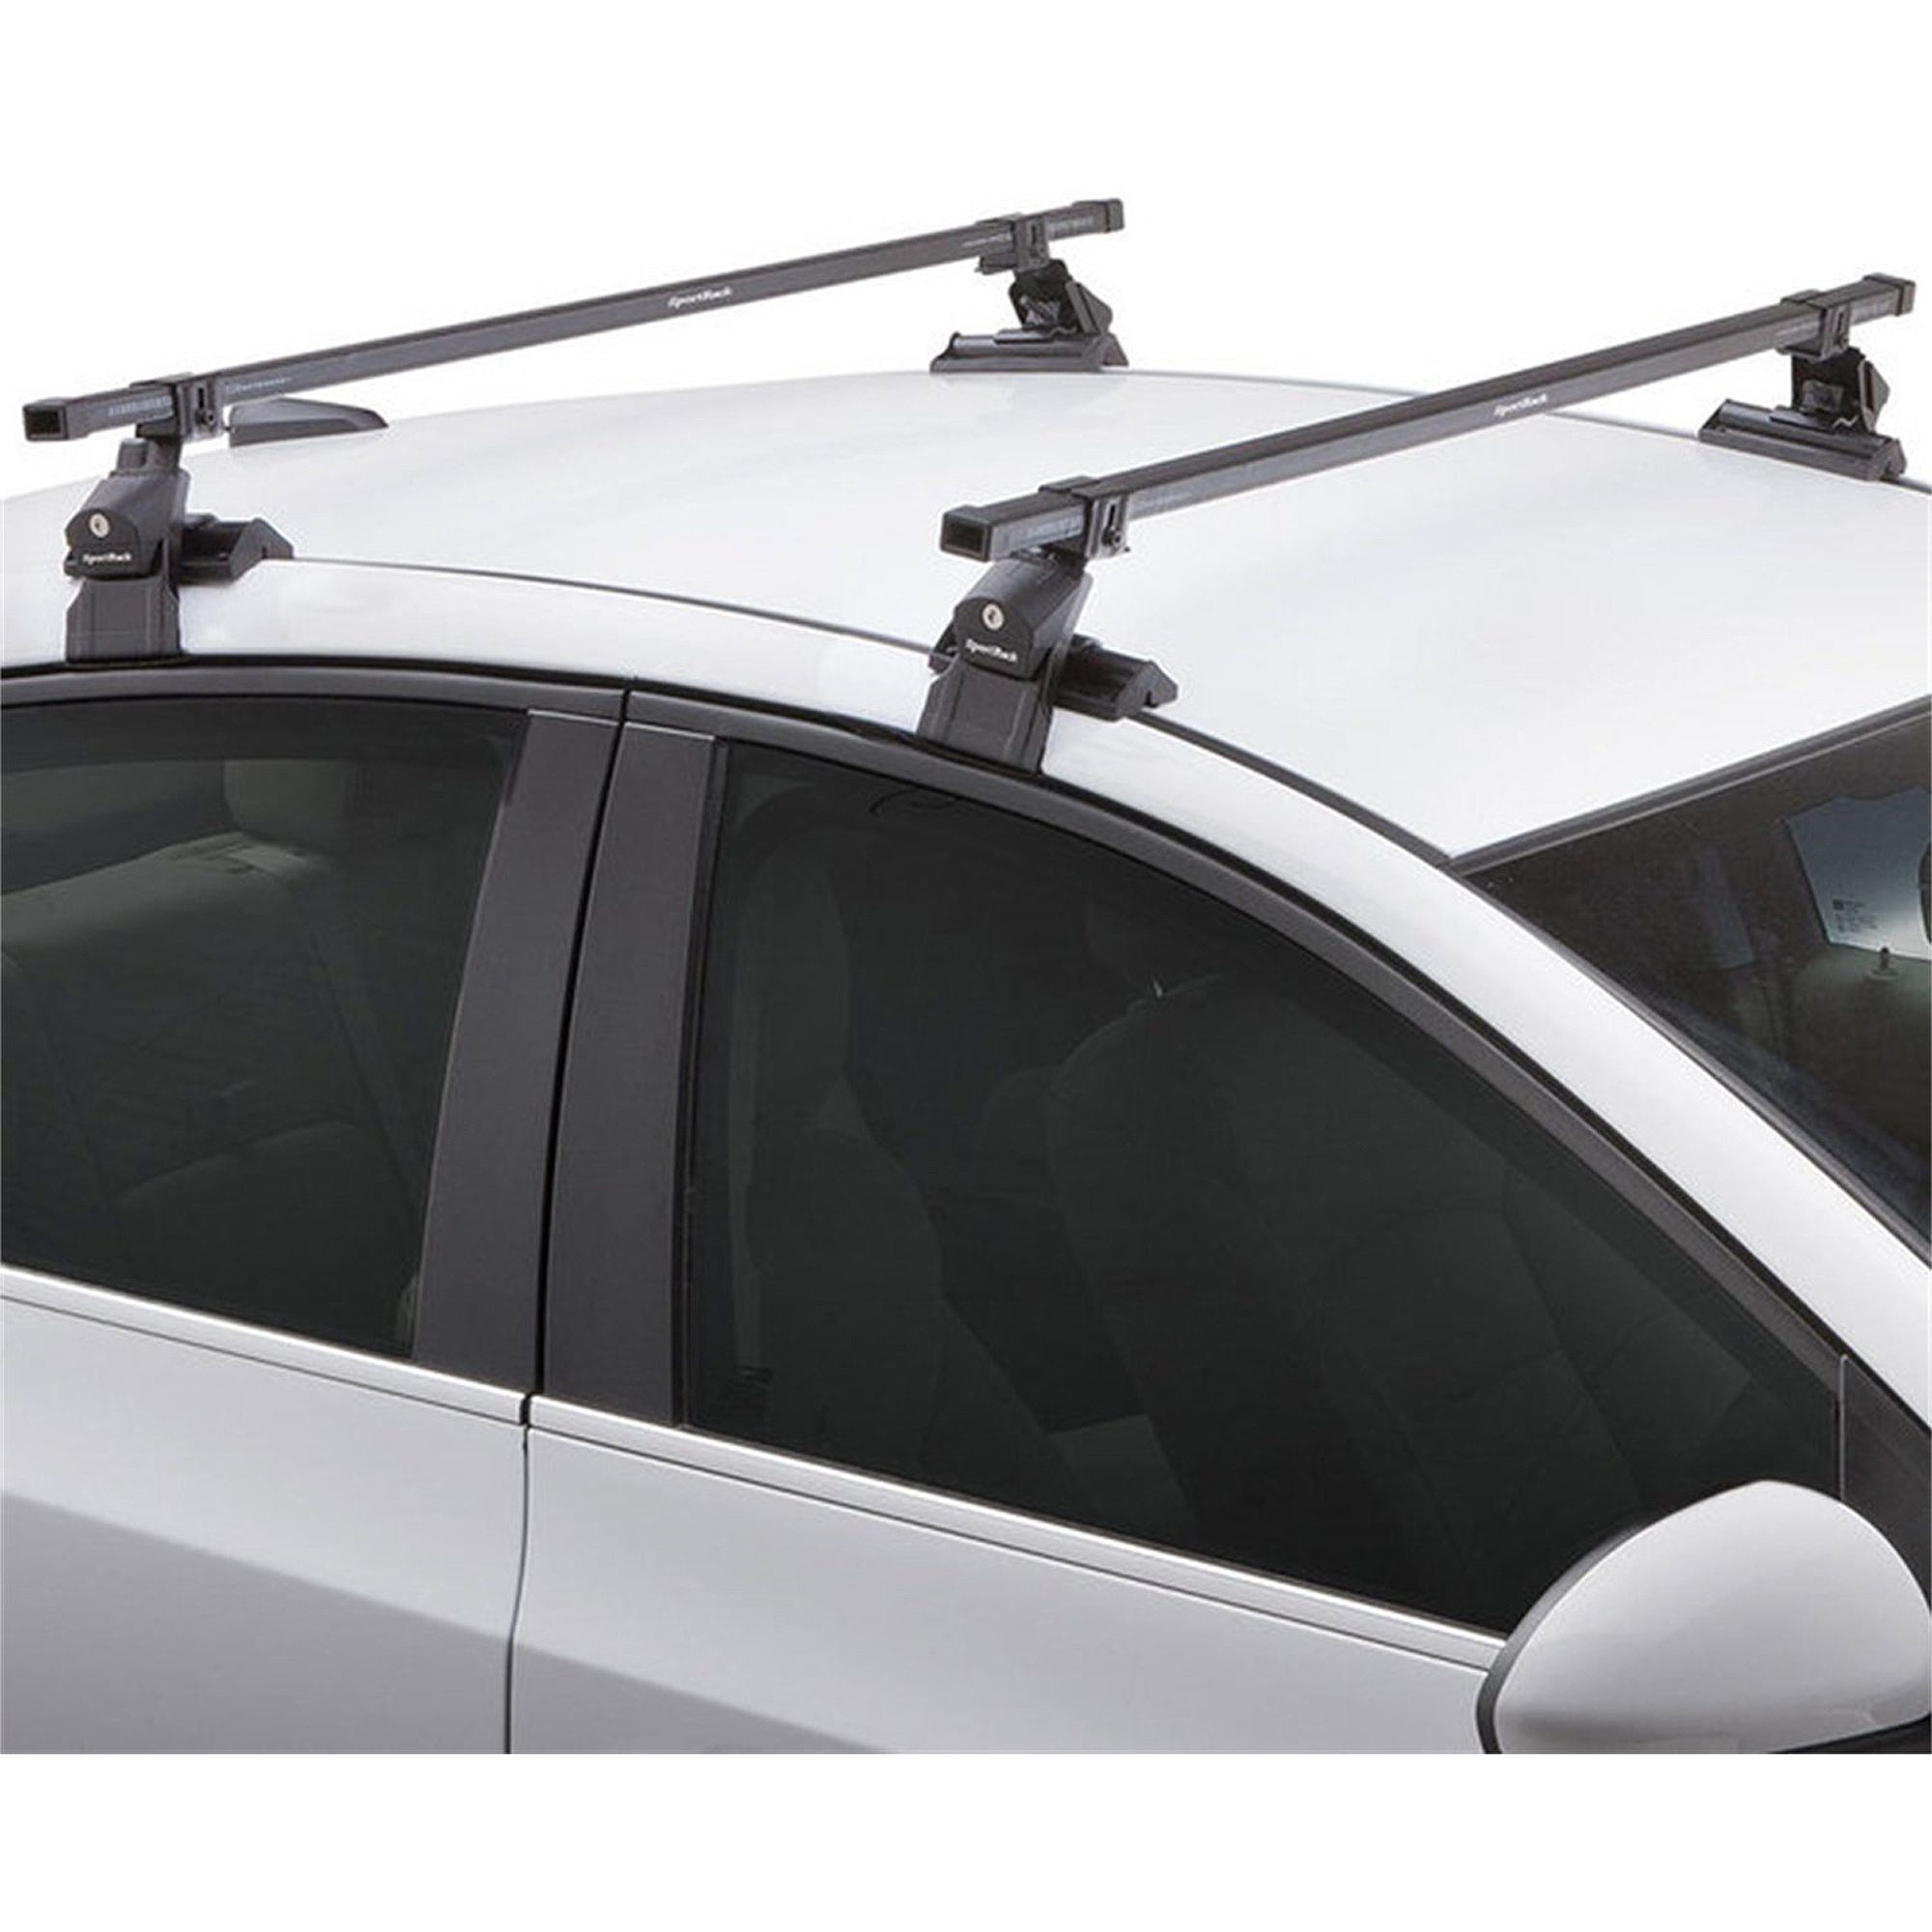 SportRack SR1002 Square Crossbar Bare Roof Rack System, 50.5 Inches, Black    Walmart.com